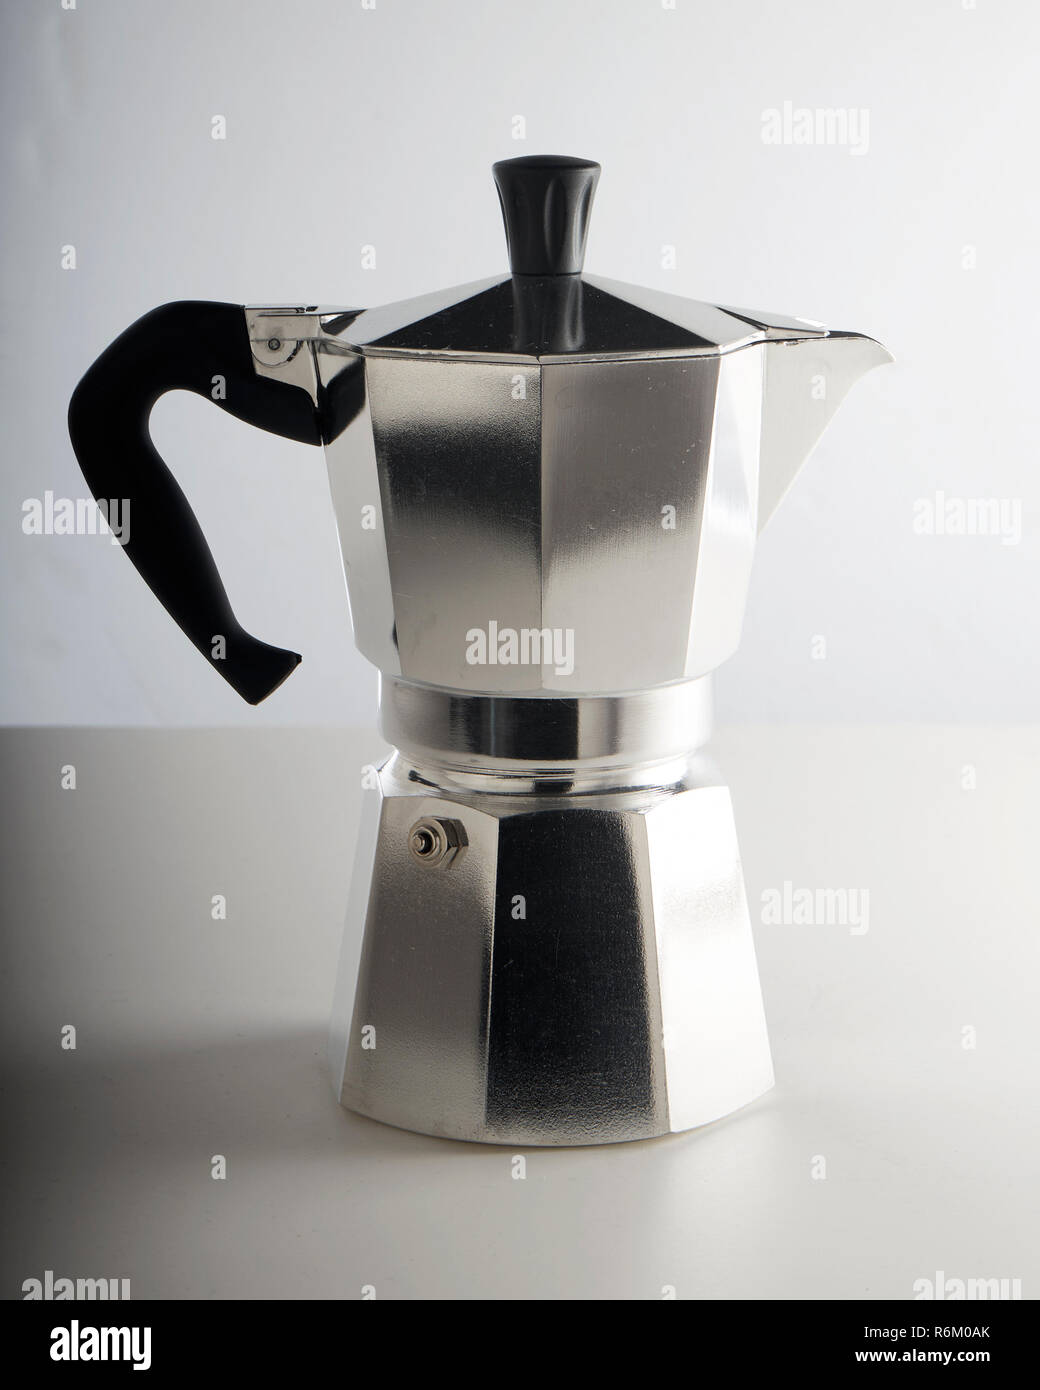 Stovetop coffee maker. - Stock Image